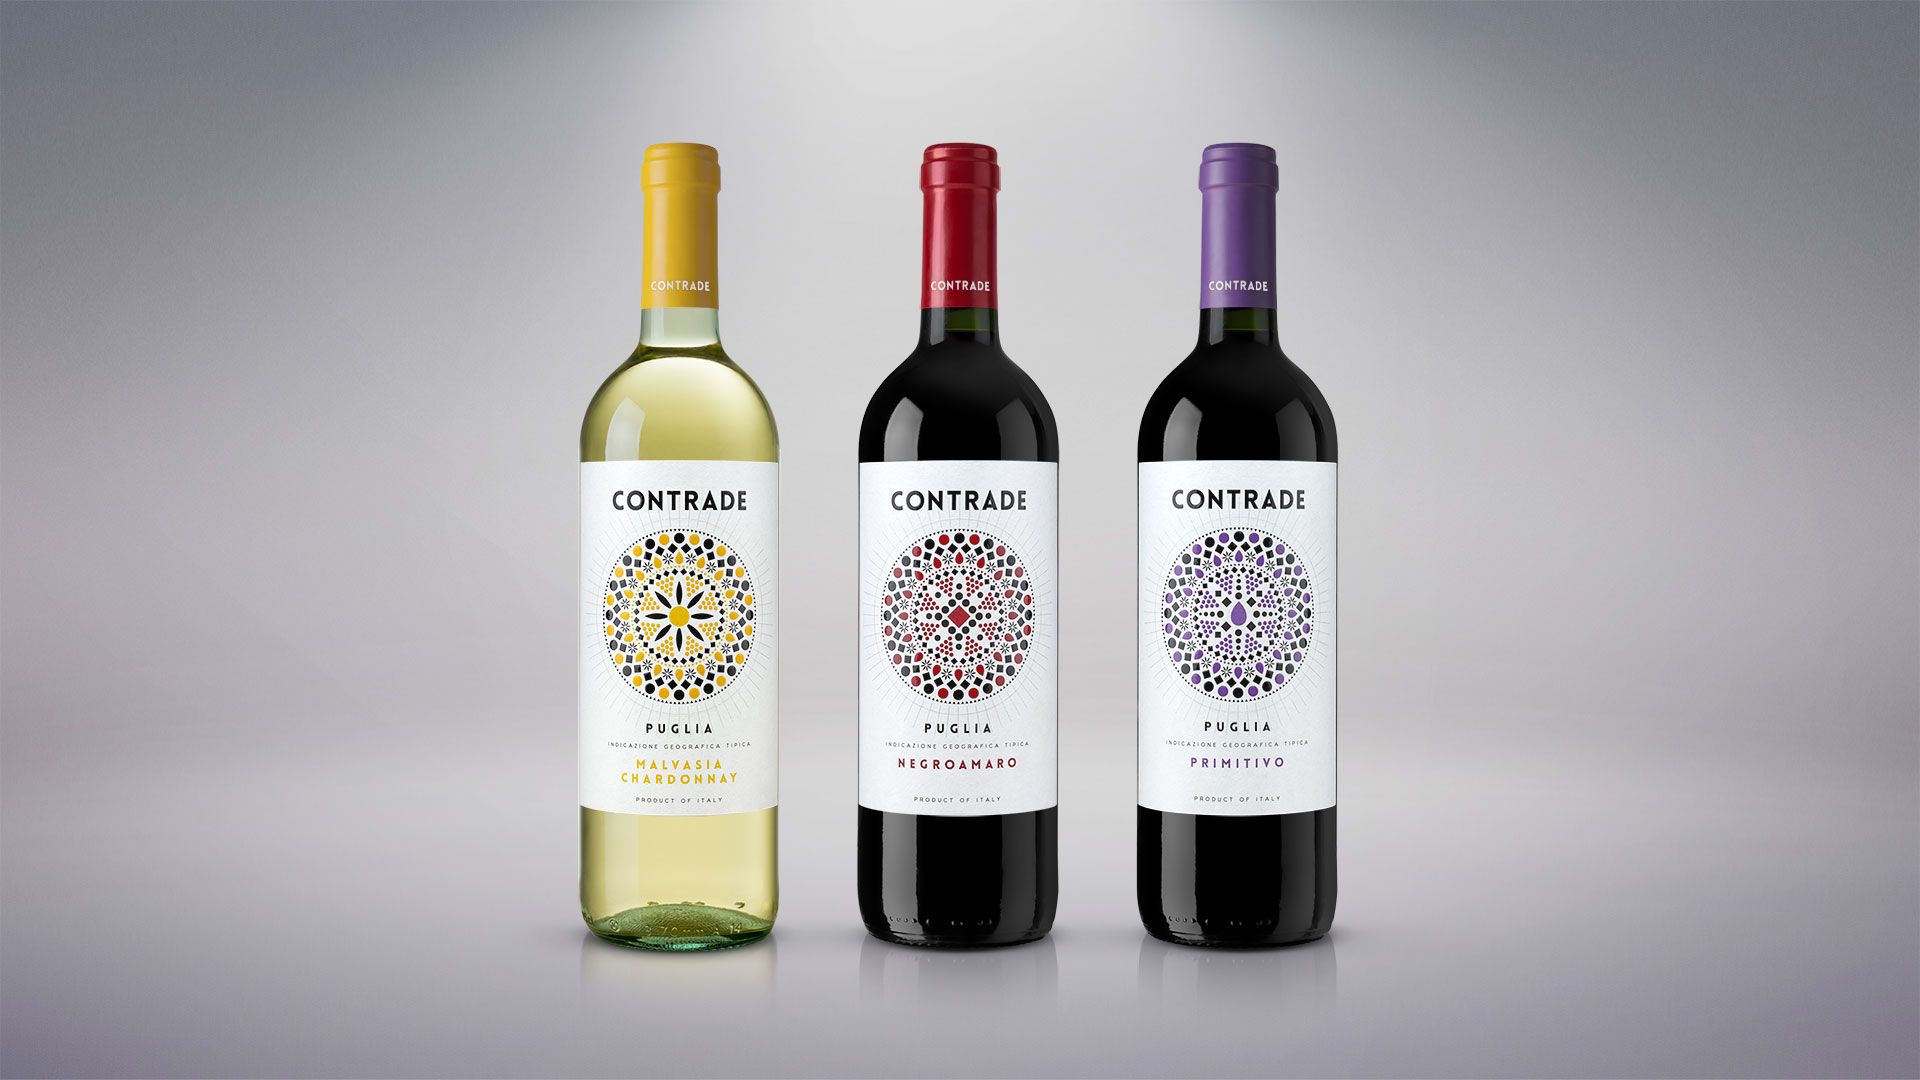 MAD13 creative room contrade-wines-1920x1080 Label Design Etichette vini Contrade